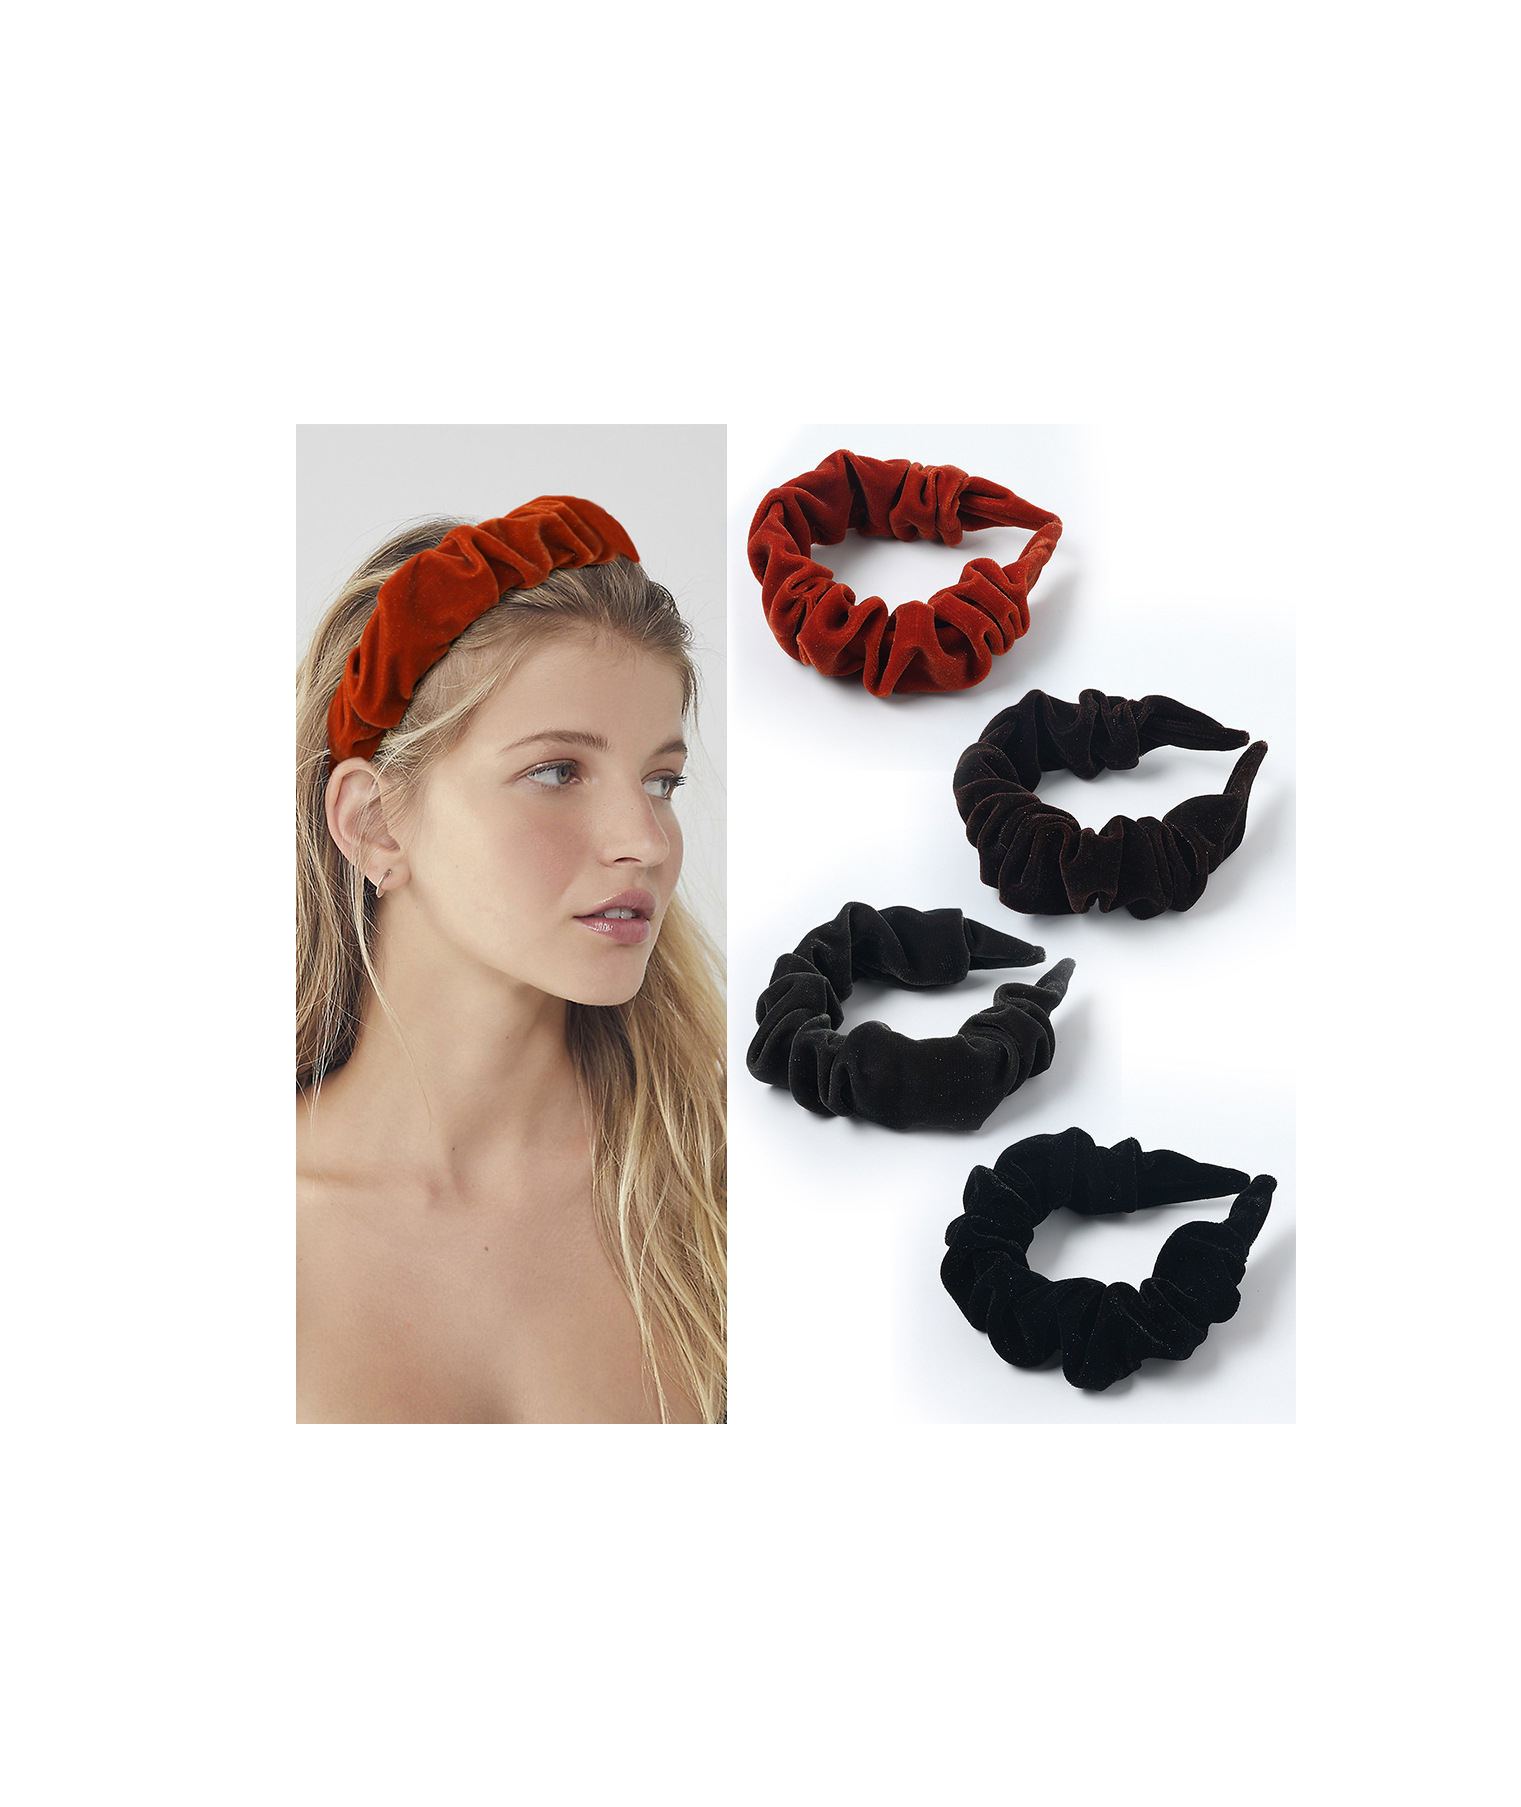 make up face wash hair accessories women hair cover custom spa moisture wicking headbands